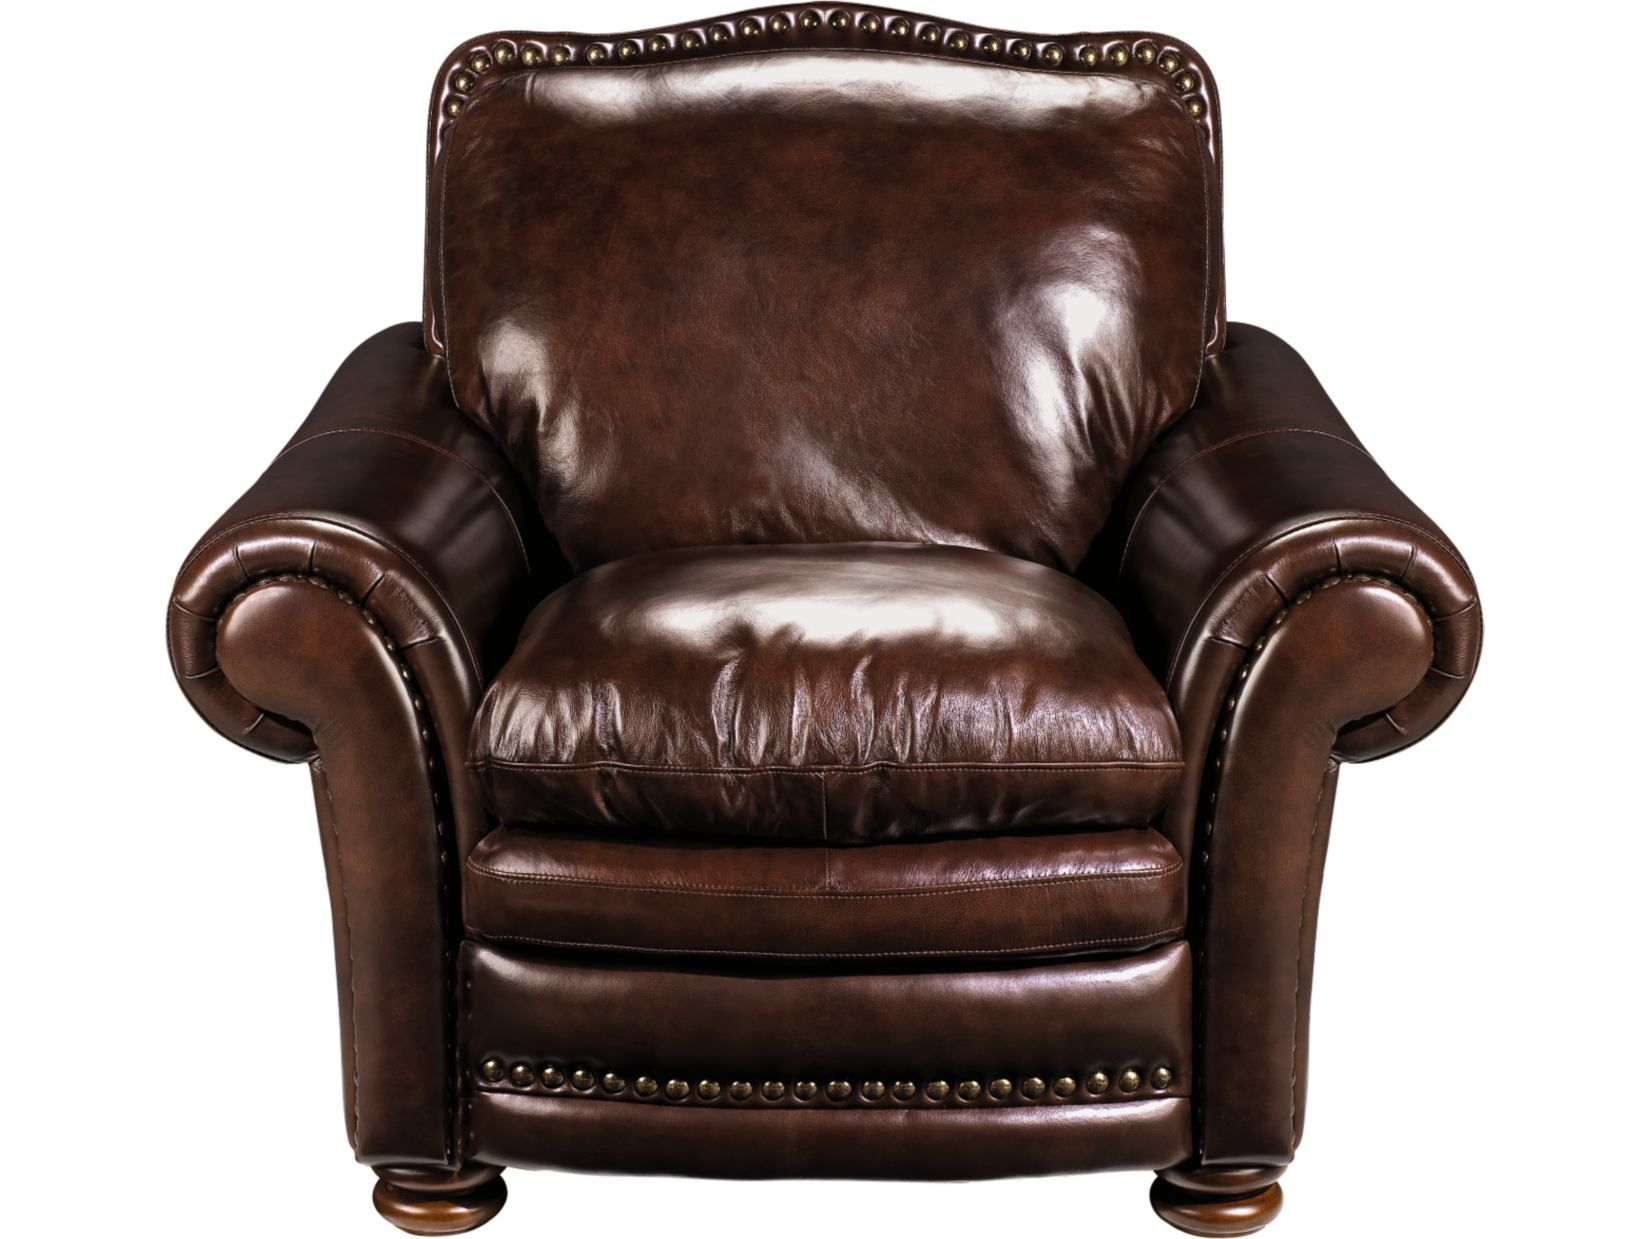 McKinsley Burgundy Leather Chair   Value City Furniture #ValueCityPinToWin